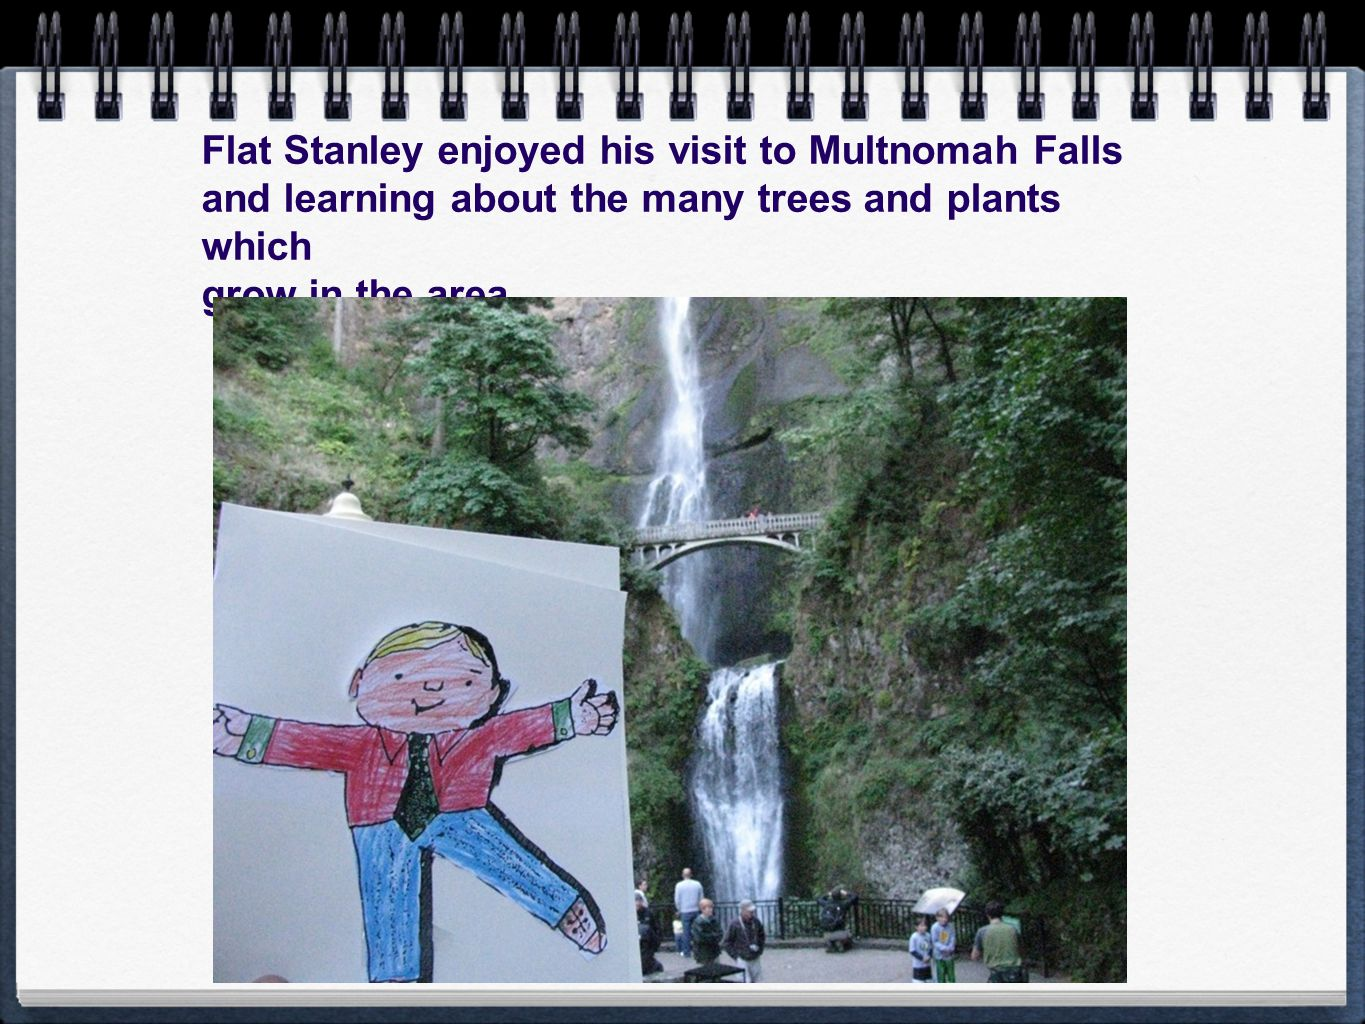 Flat Stanley enjoyed his visit to Multnomah Falls and learning about the many trees and plants which grow in the area.